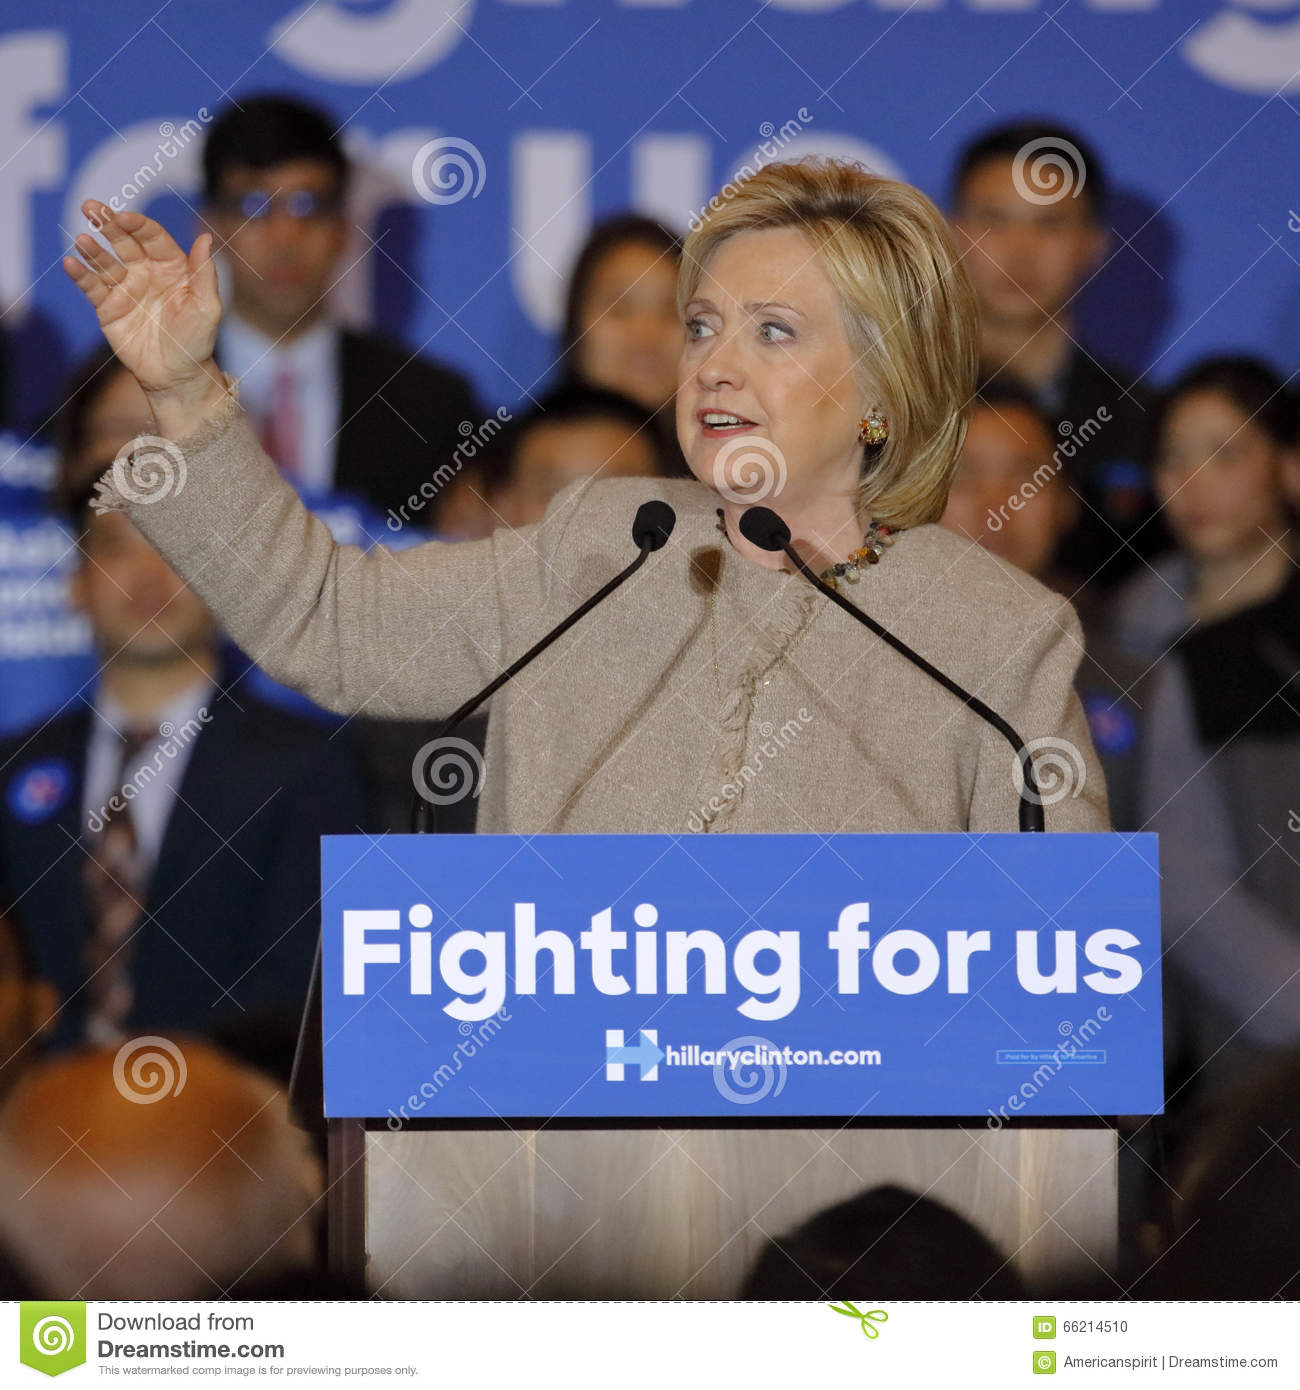 SAN GABRIEL, LA, CA - JANUARY 7, 2016, Democratic Presidential candidate Hillary Clinton speaks to Asian American and Pacific Isla